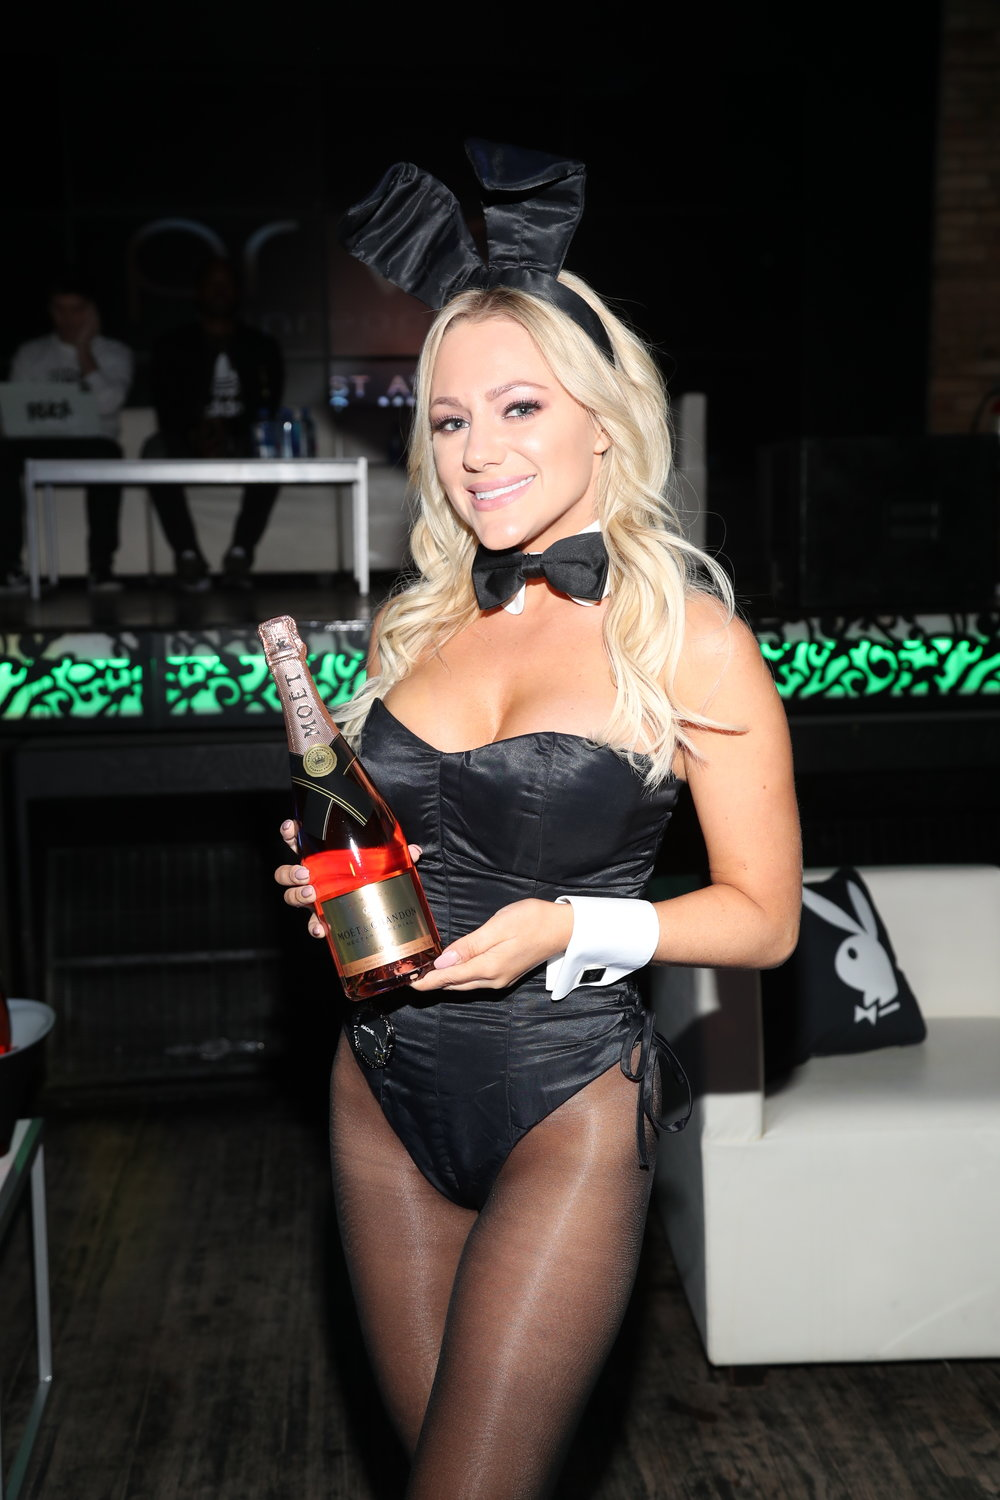 Playmate with Möet bottle